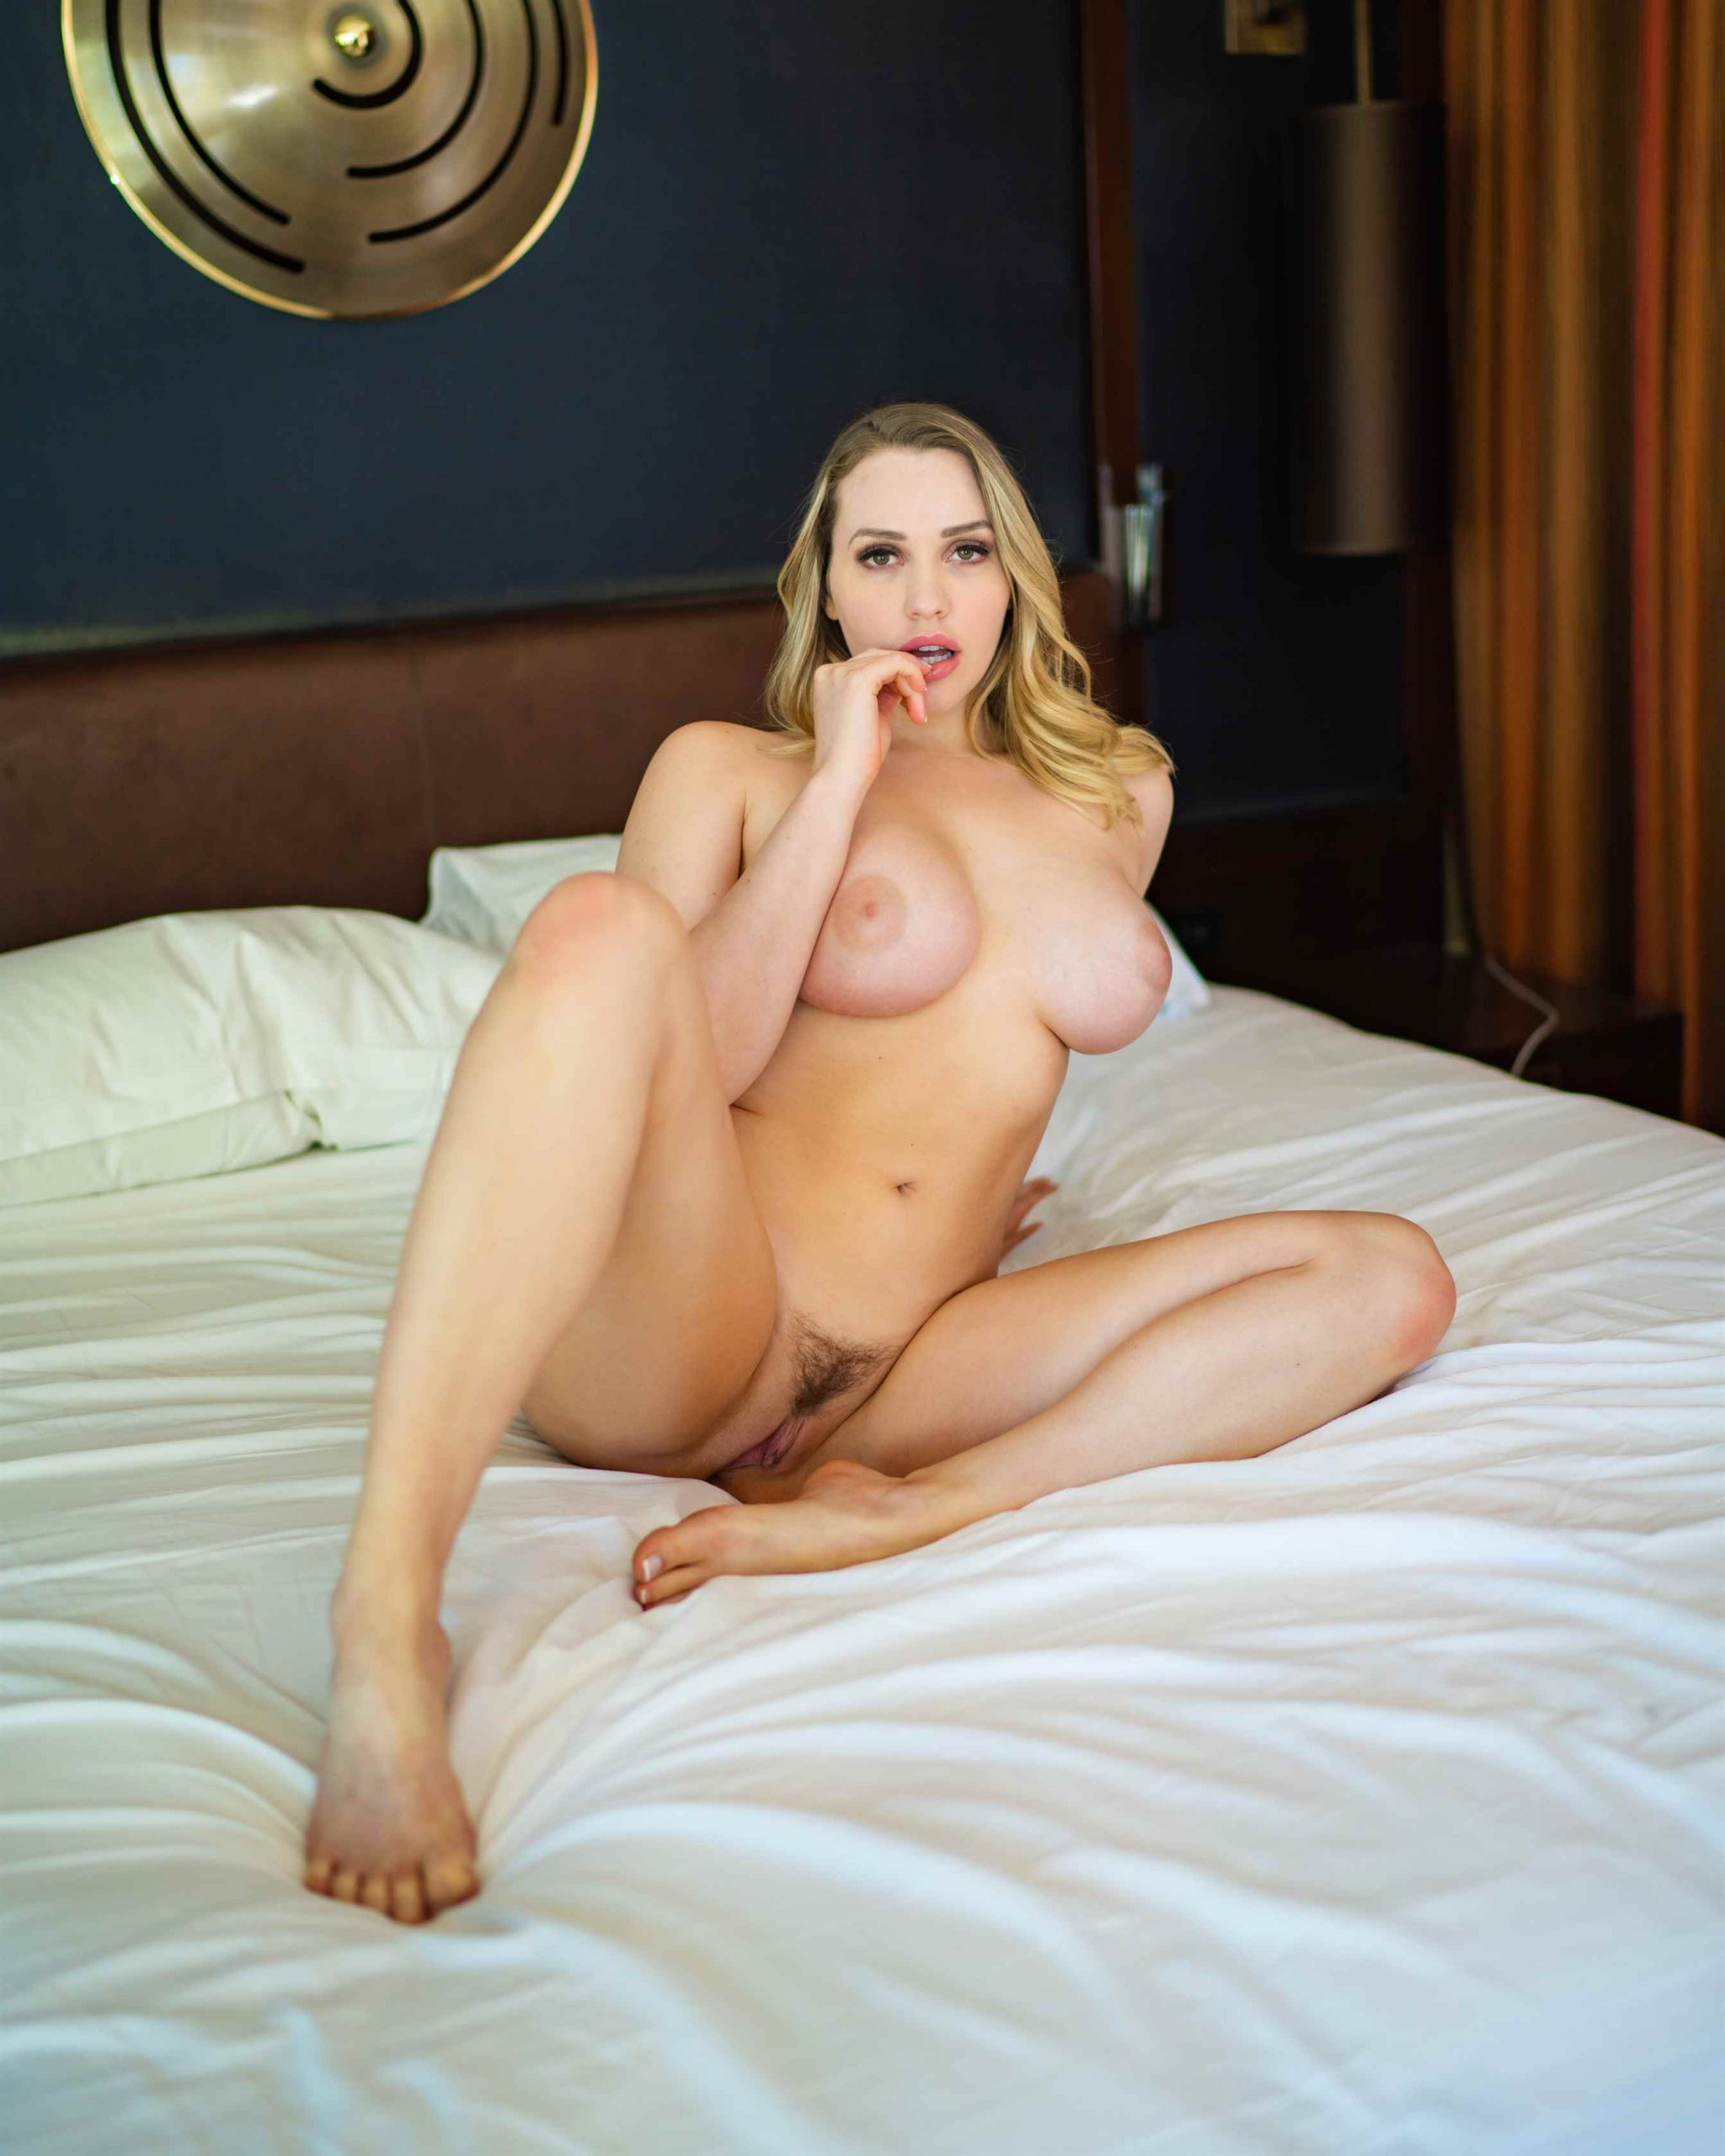 Muse X Nude Onlyfans Photos Leaked 0027